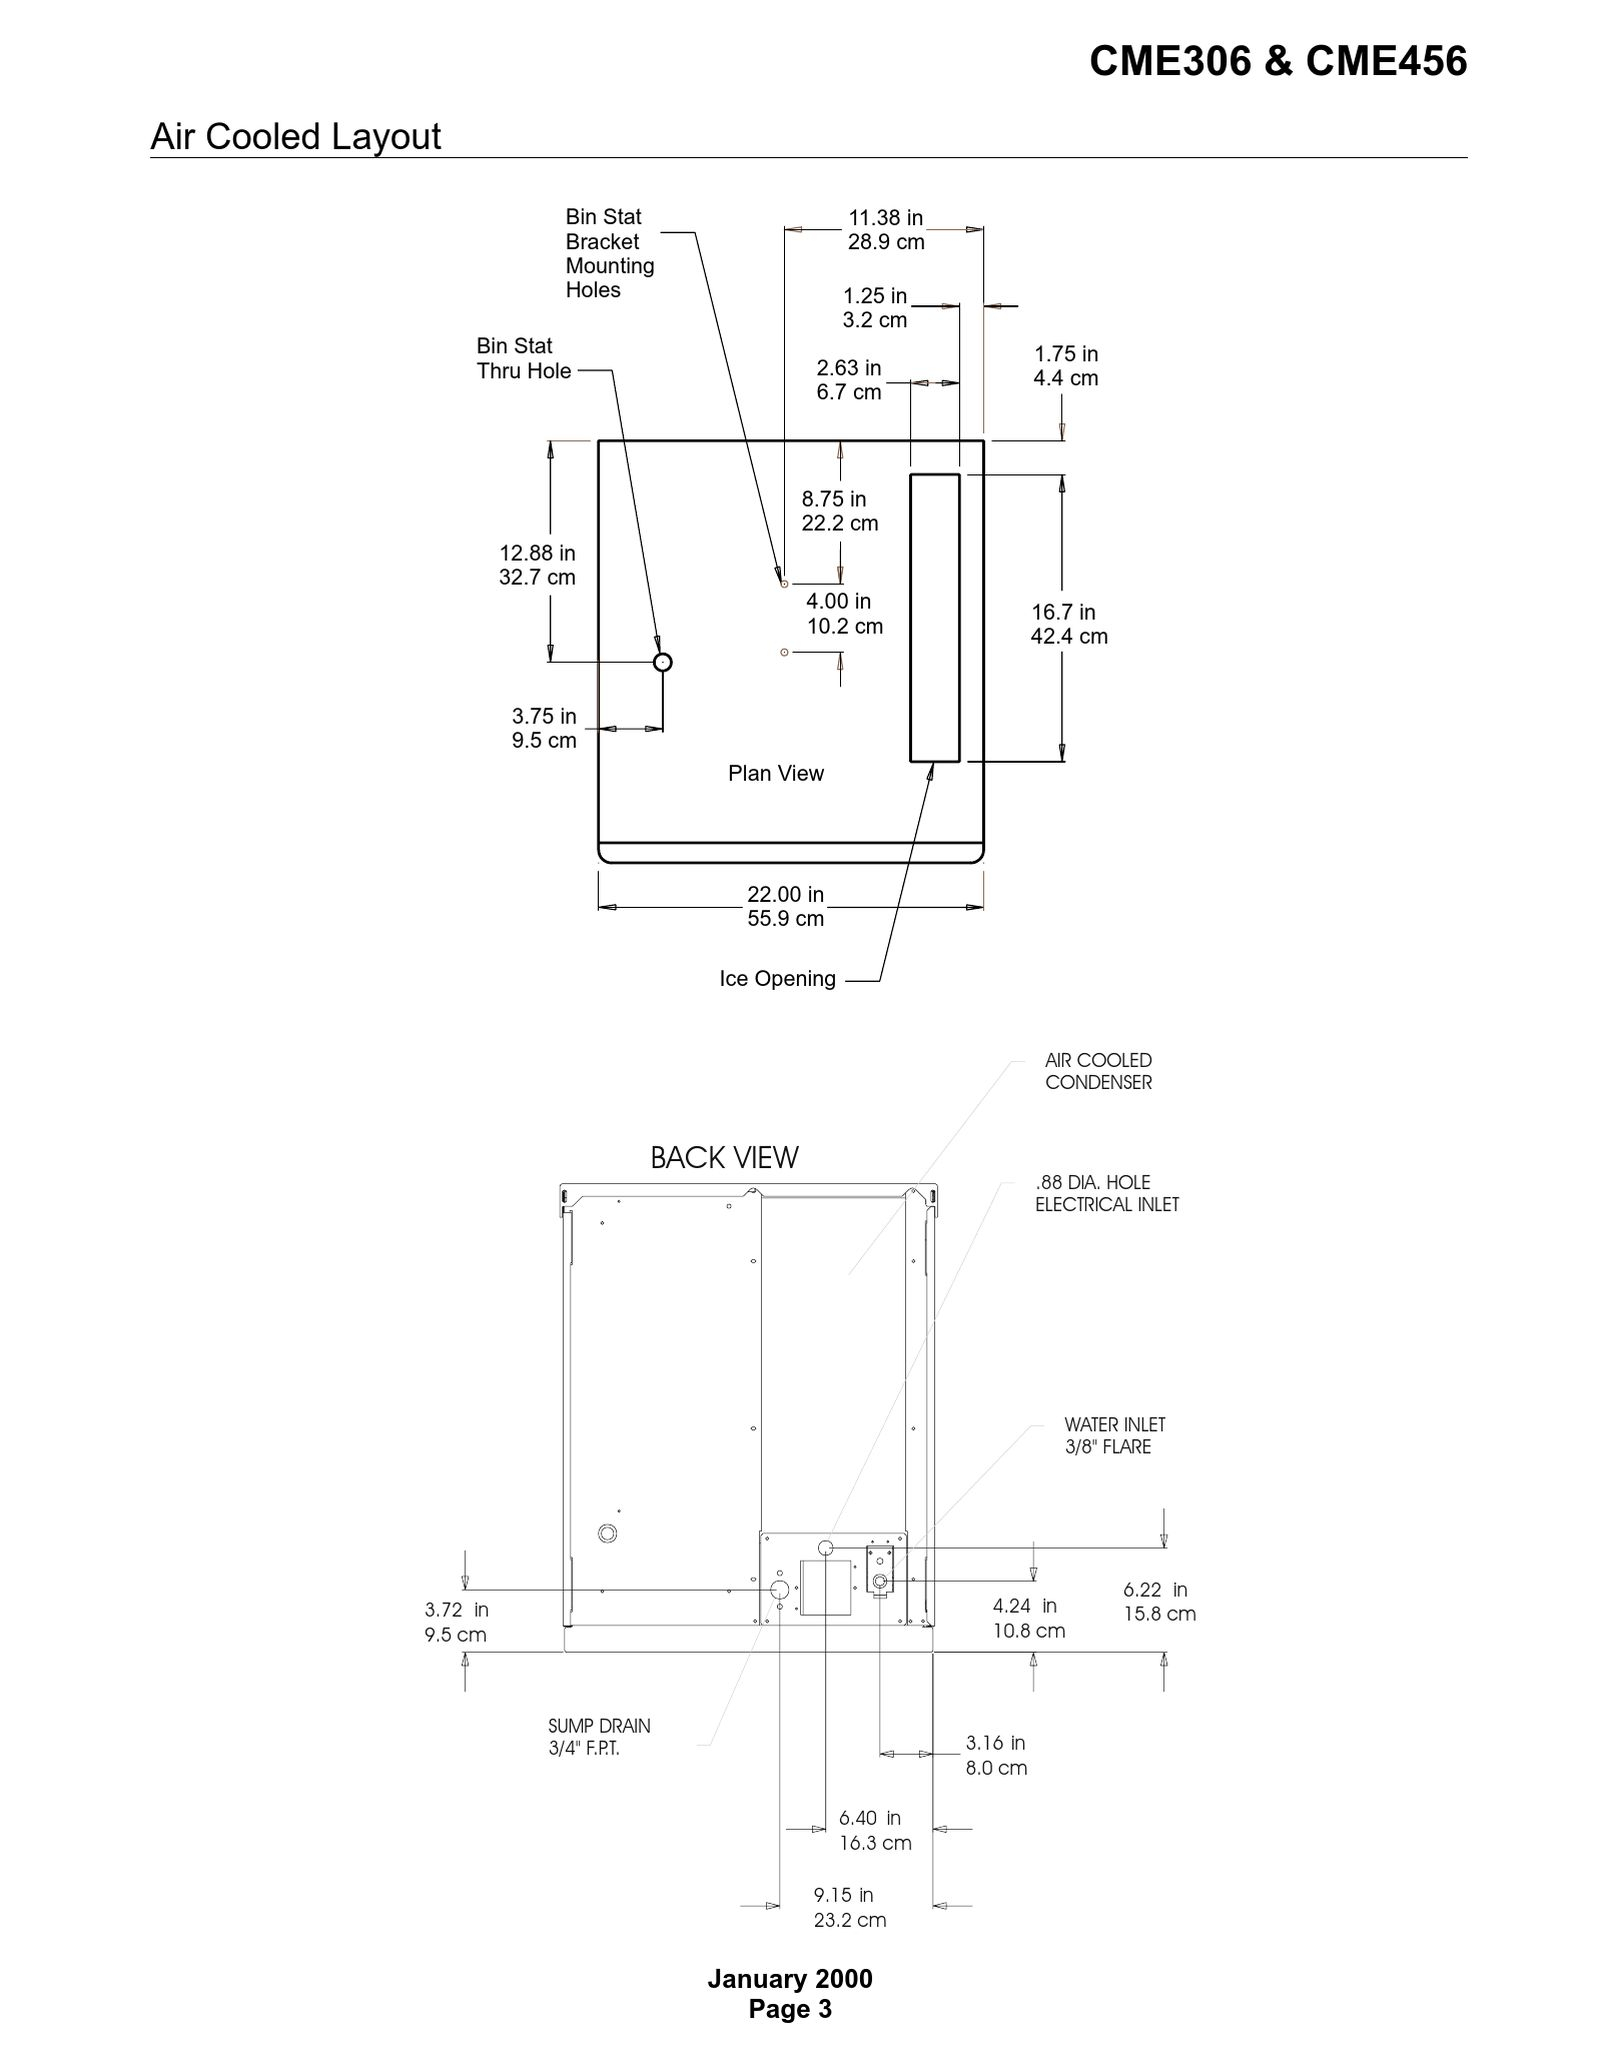 hight resolution of scotsman ice machine wiring diagram scotsman ice machine wiring diagram fresh service manual cme306 cme456